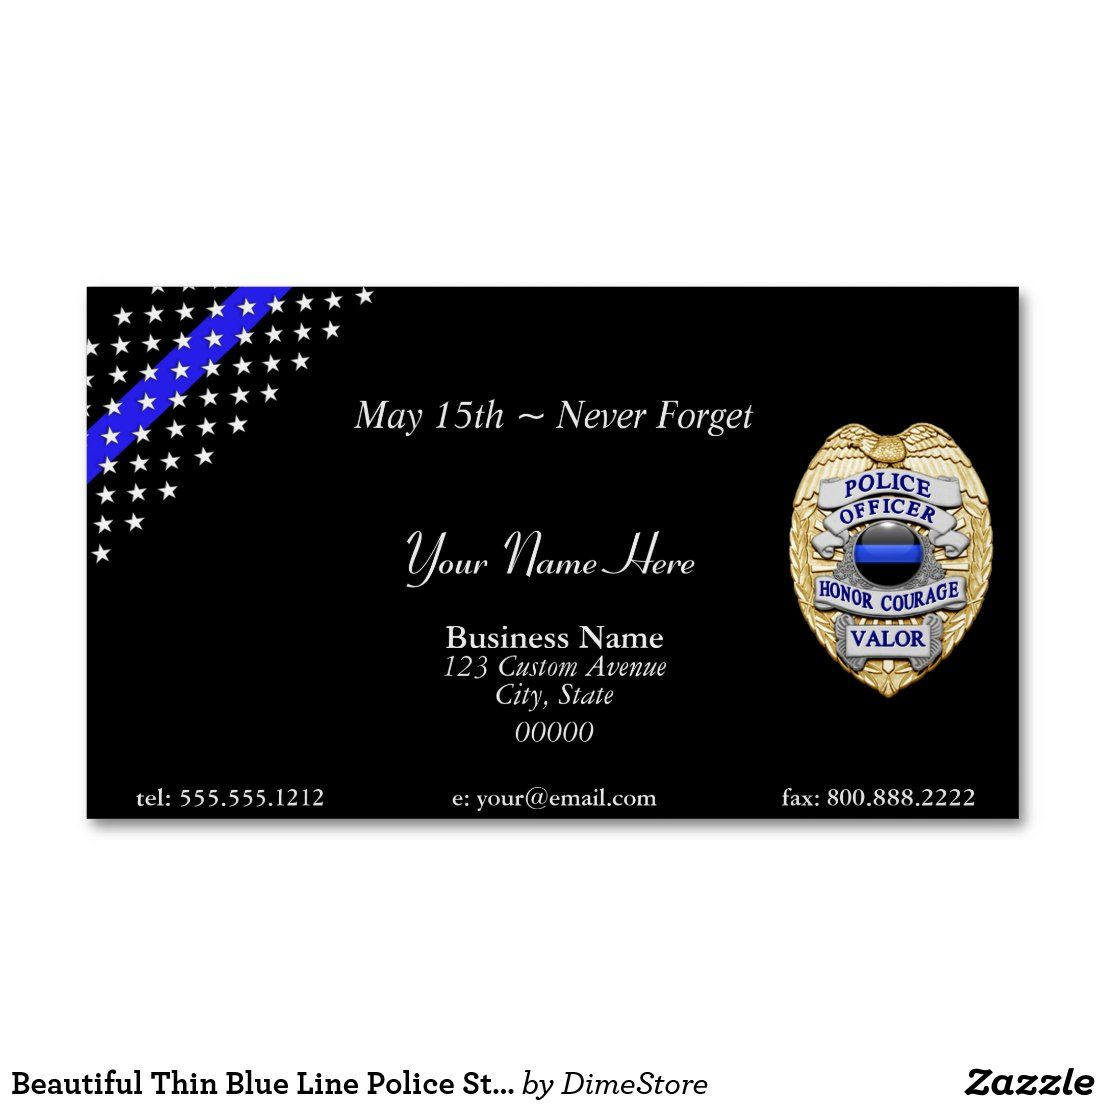 Beautiful Thin Blue Line Police Stars And Stripes Magnetic Business Card Zazzle Com In 2020 Magnetic Business Cards Colorful Business Card Cool Business Cards